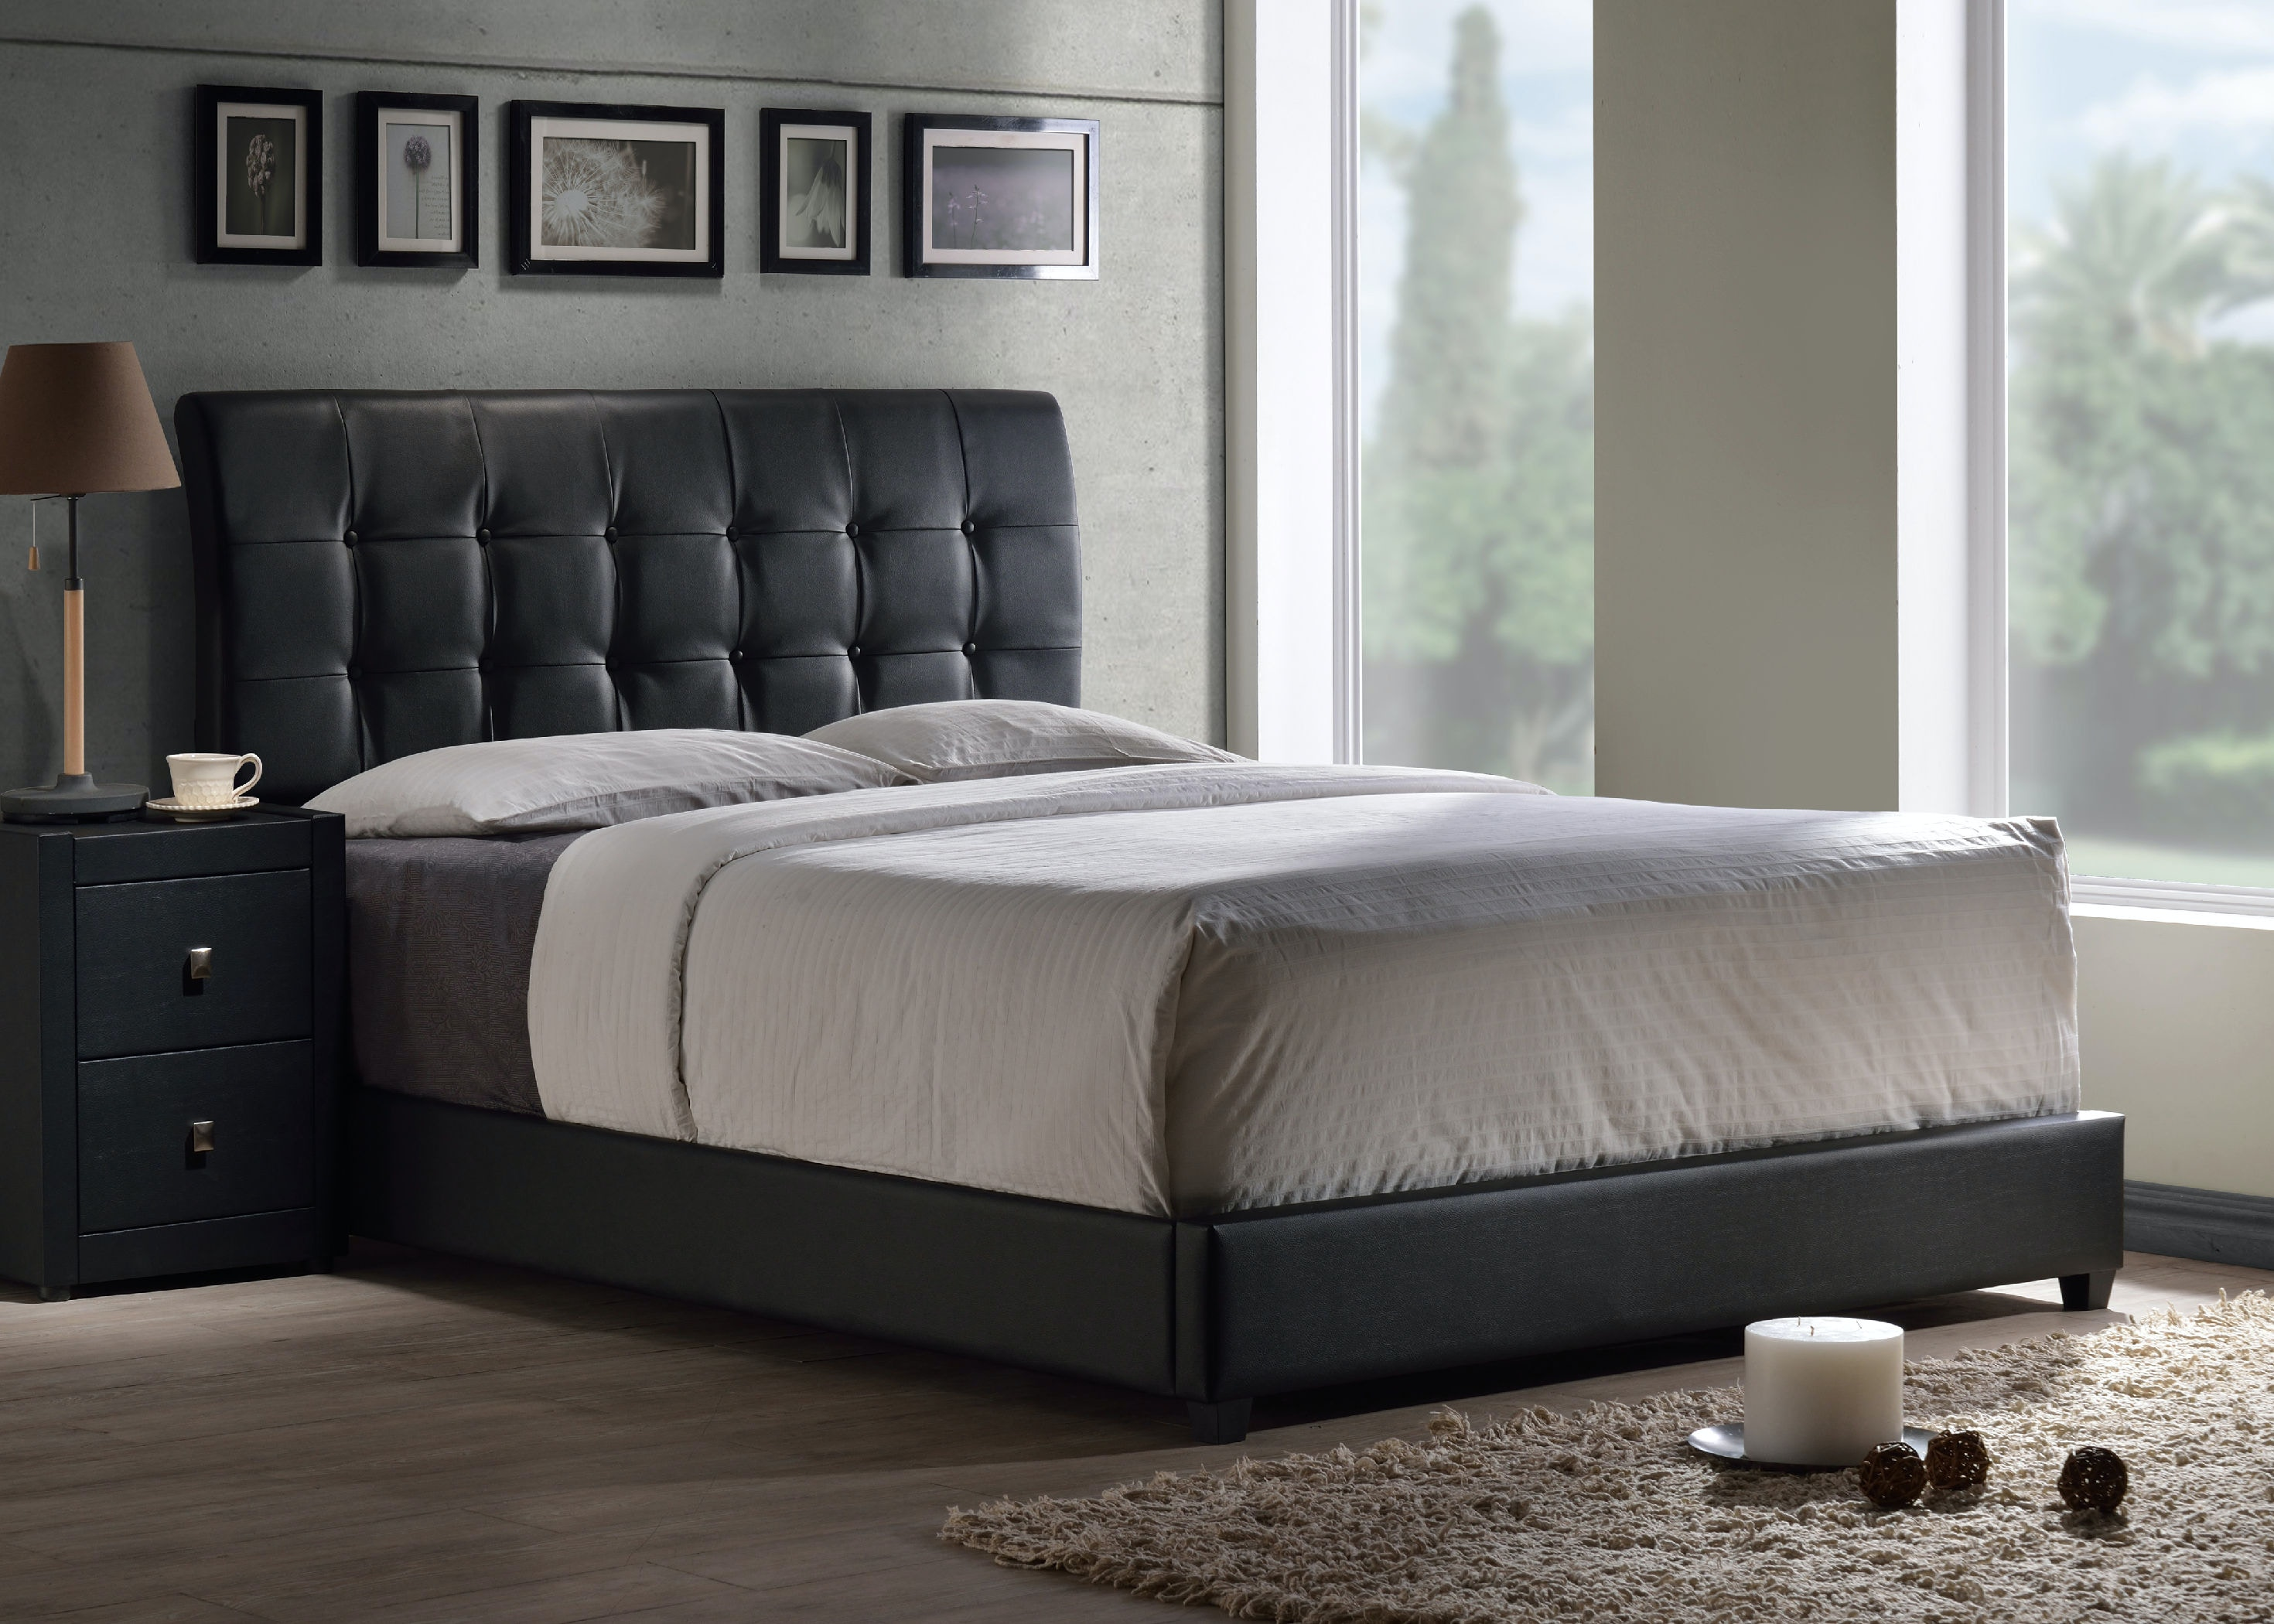 Hillsdale Furniture Lusso Queen Bed Set with Rails 1281BQR